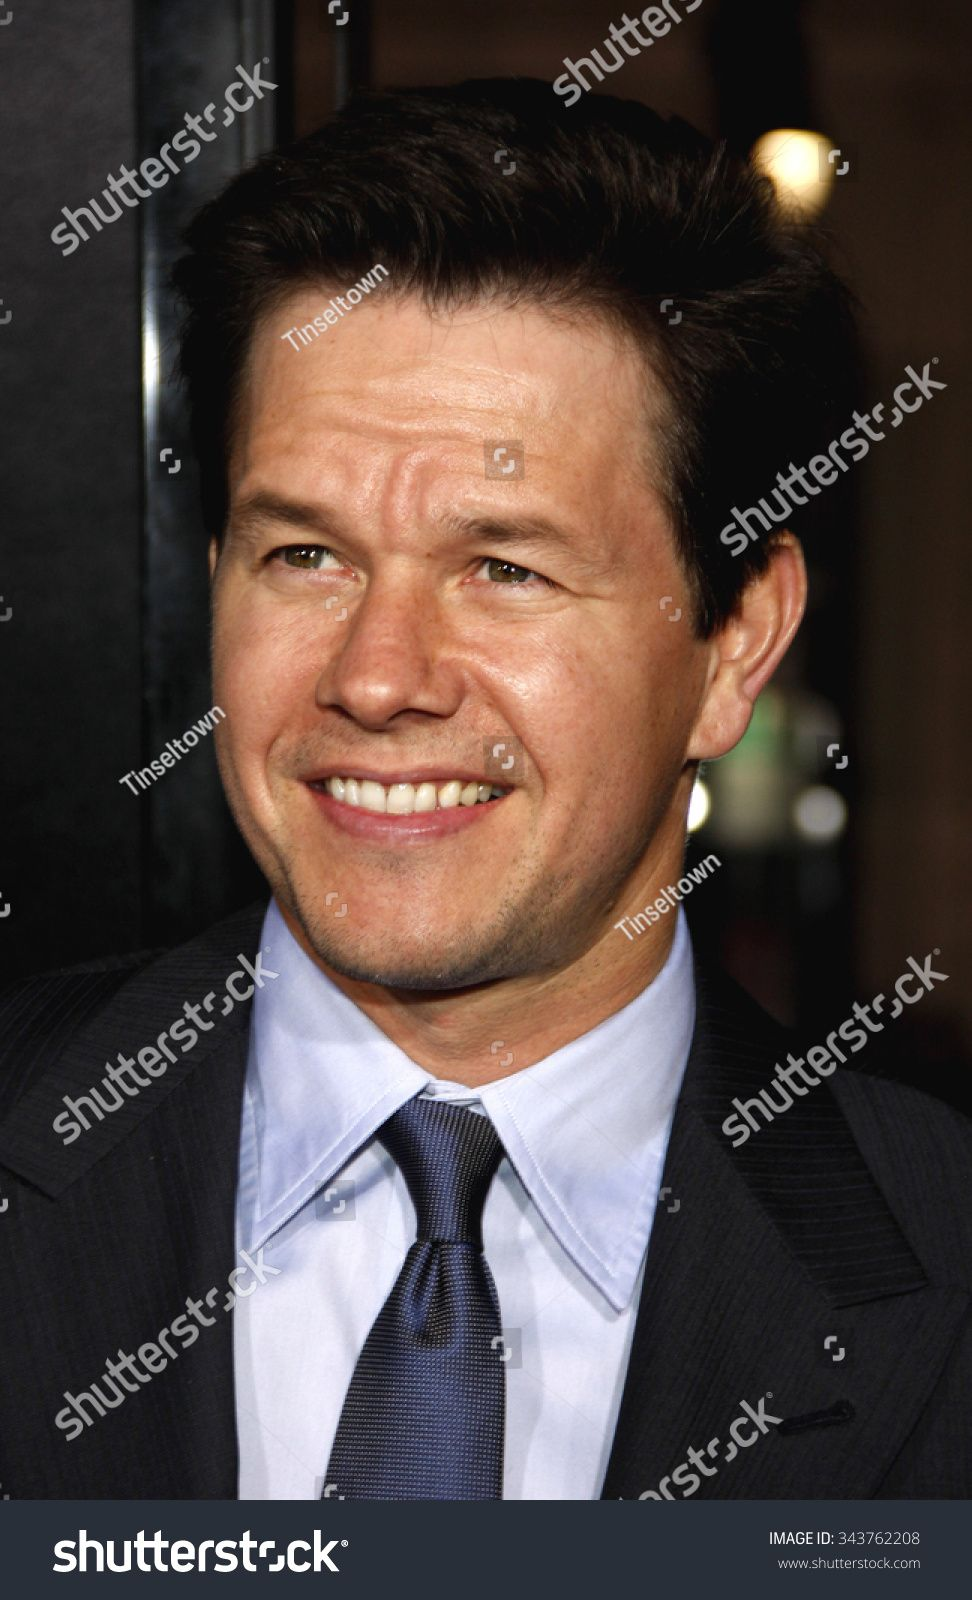 Mark Wahlberg At The Los Angeles Premiere Of The Fighter Held At The Grauman S Chinese Theater In Hollywood Ad In 2020 Photo Editing Stock Photos Nicky Hilton